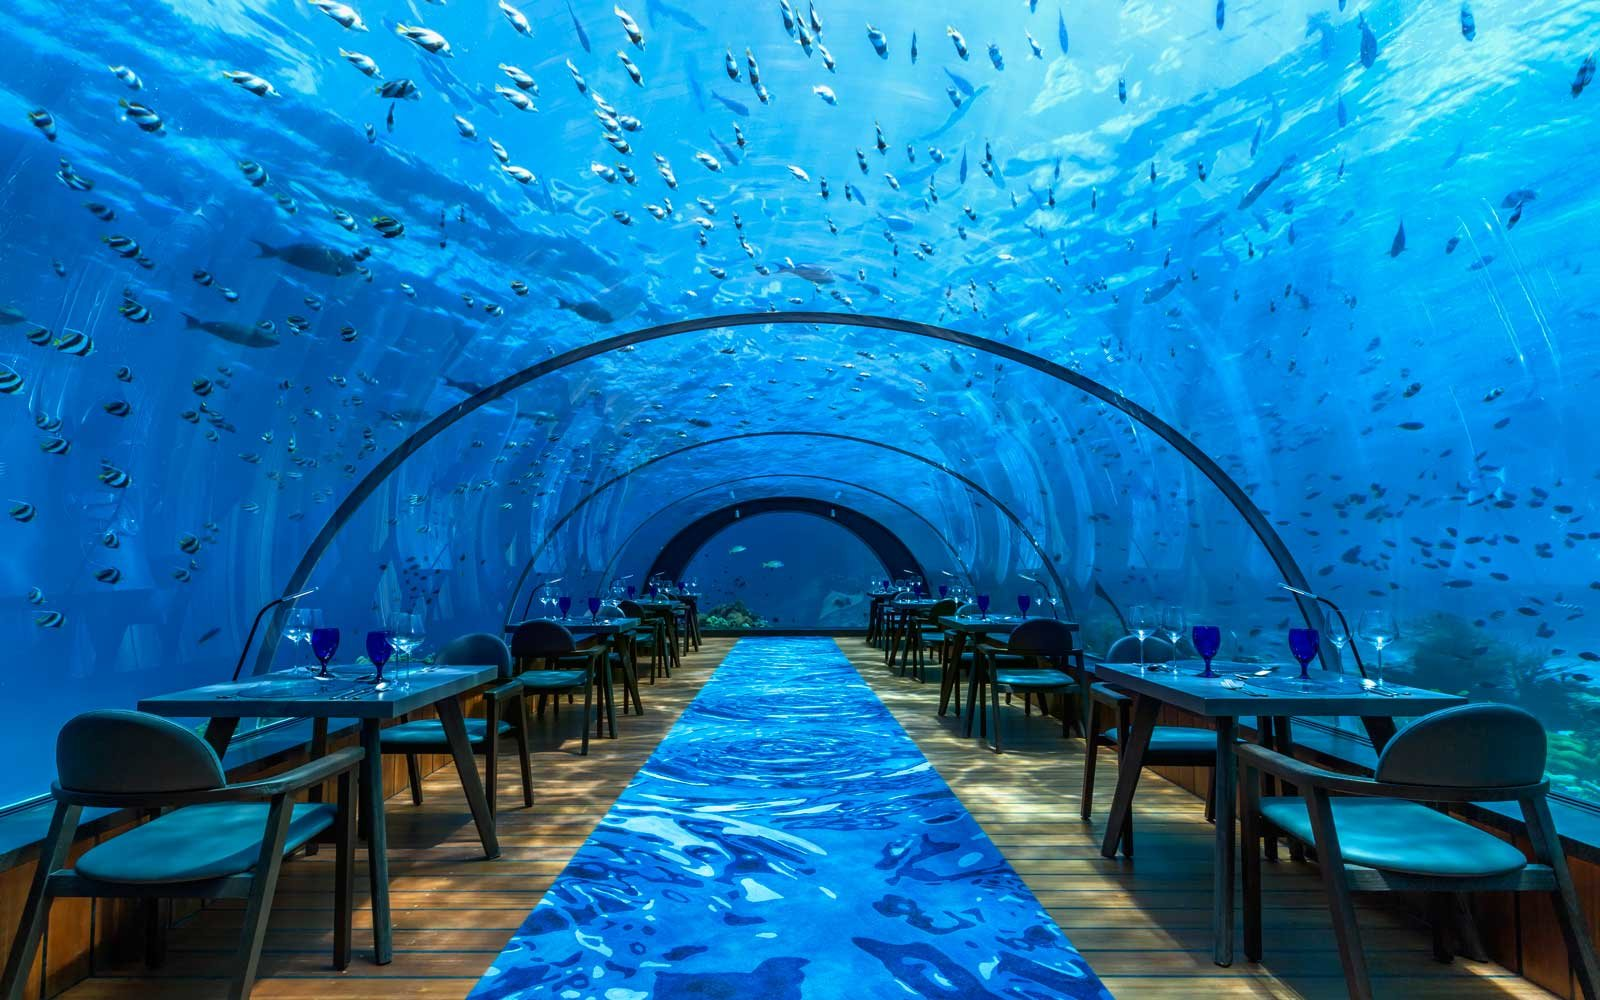 underwater restaurant disney world. Maldives Hurawalhi Underwater Restaurant Disney World